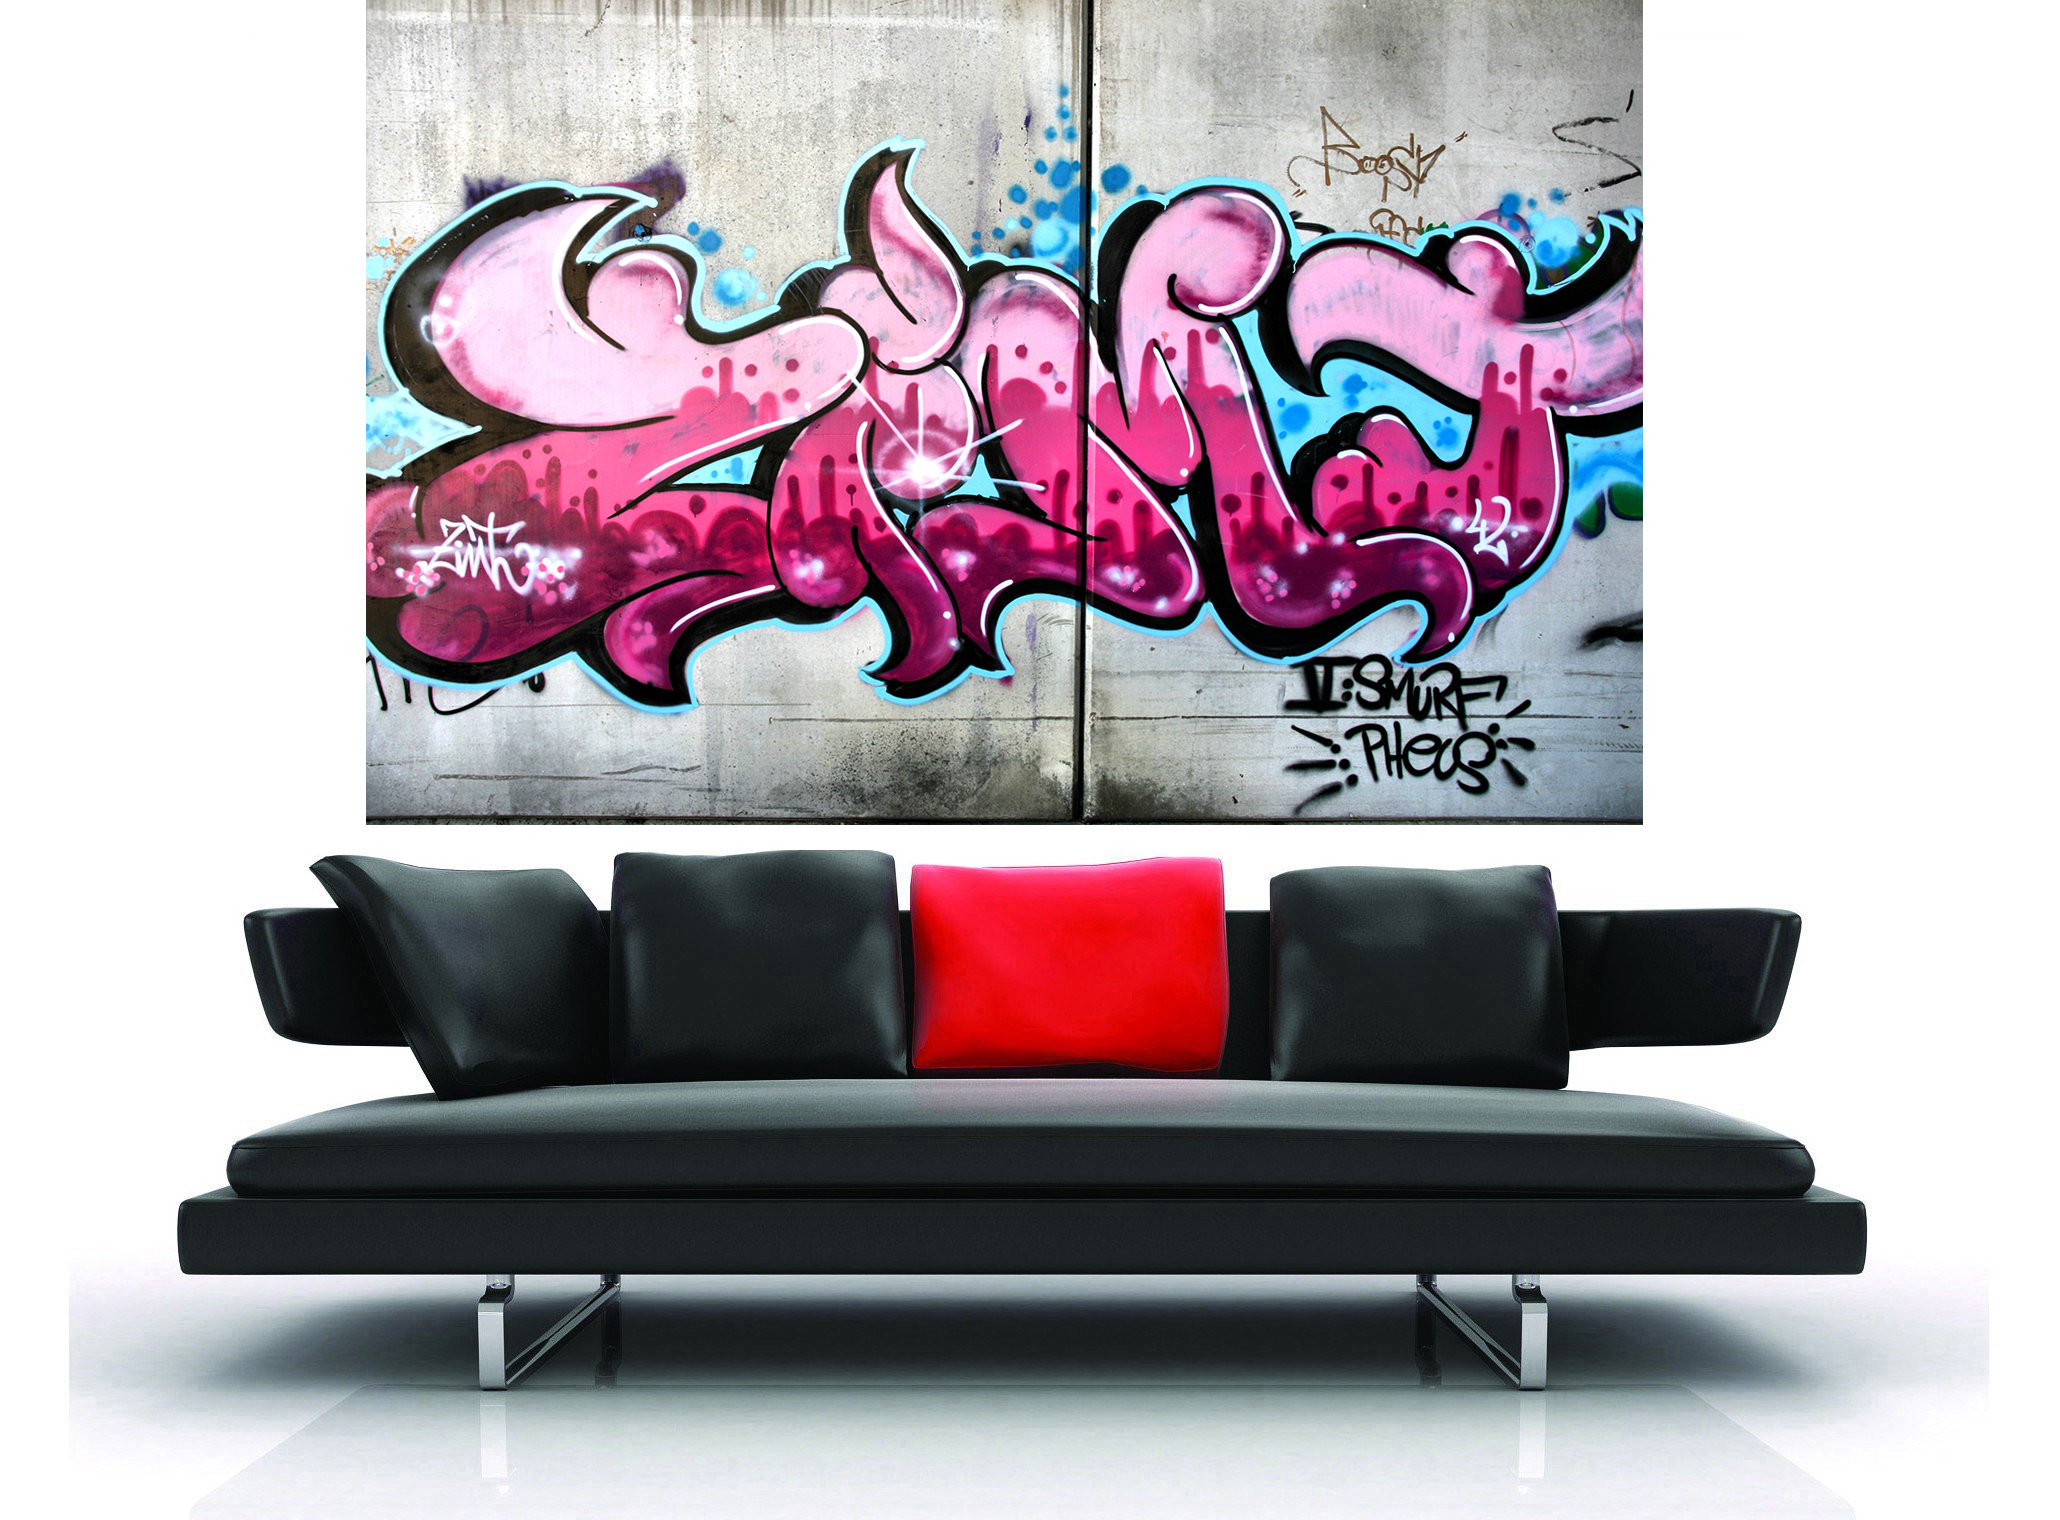 A0 SUPER SIZE CANVAS STREET ART GRAFFITI  PRINT urban  BANKSY wall decor